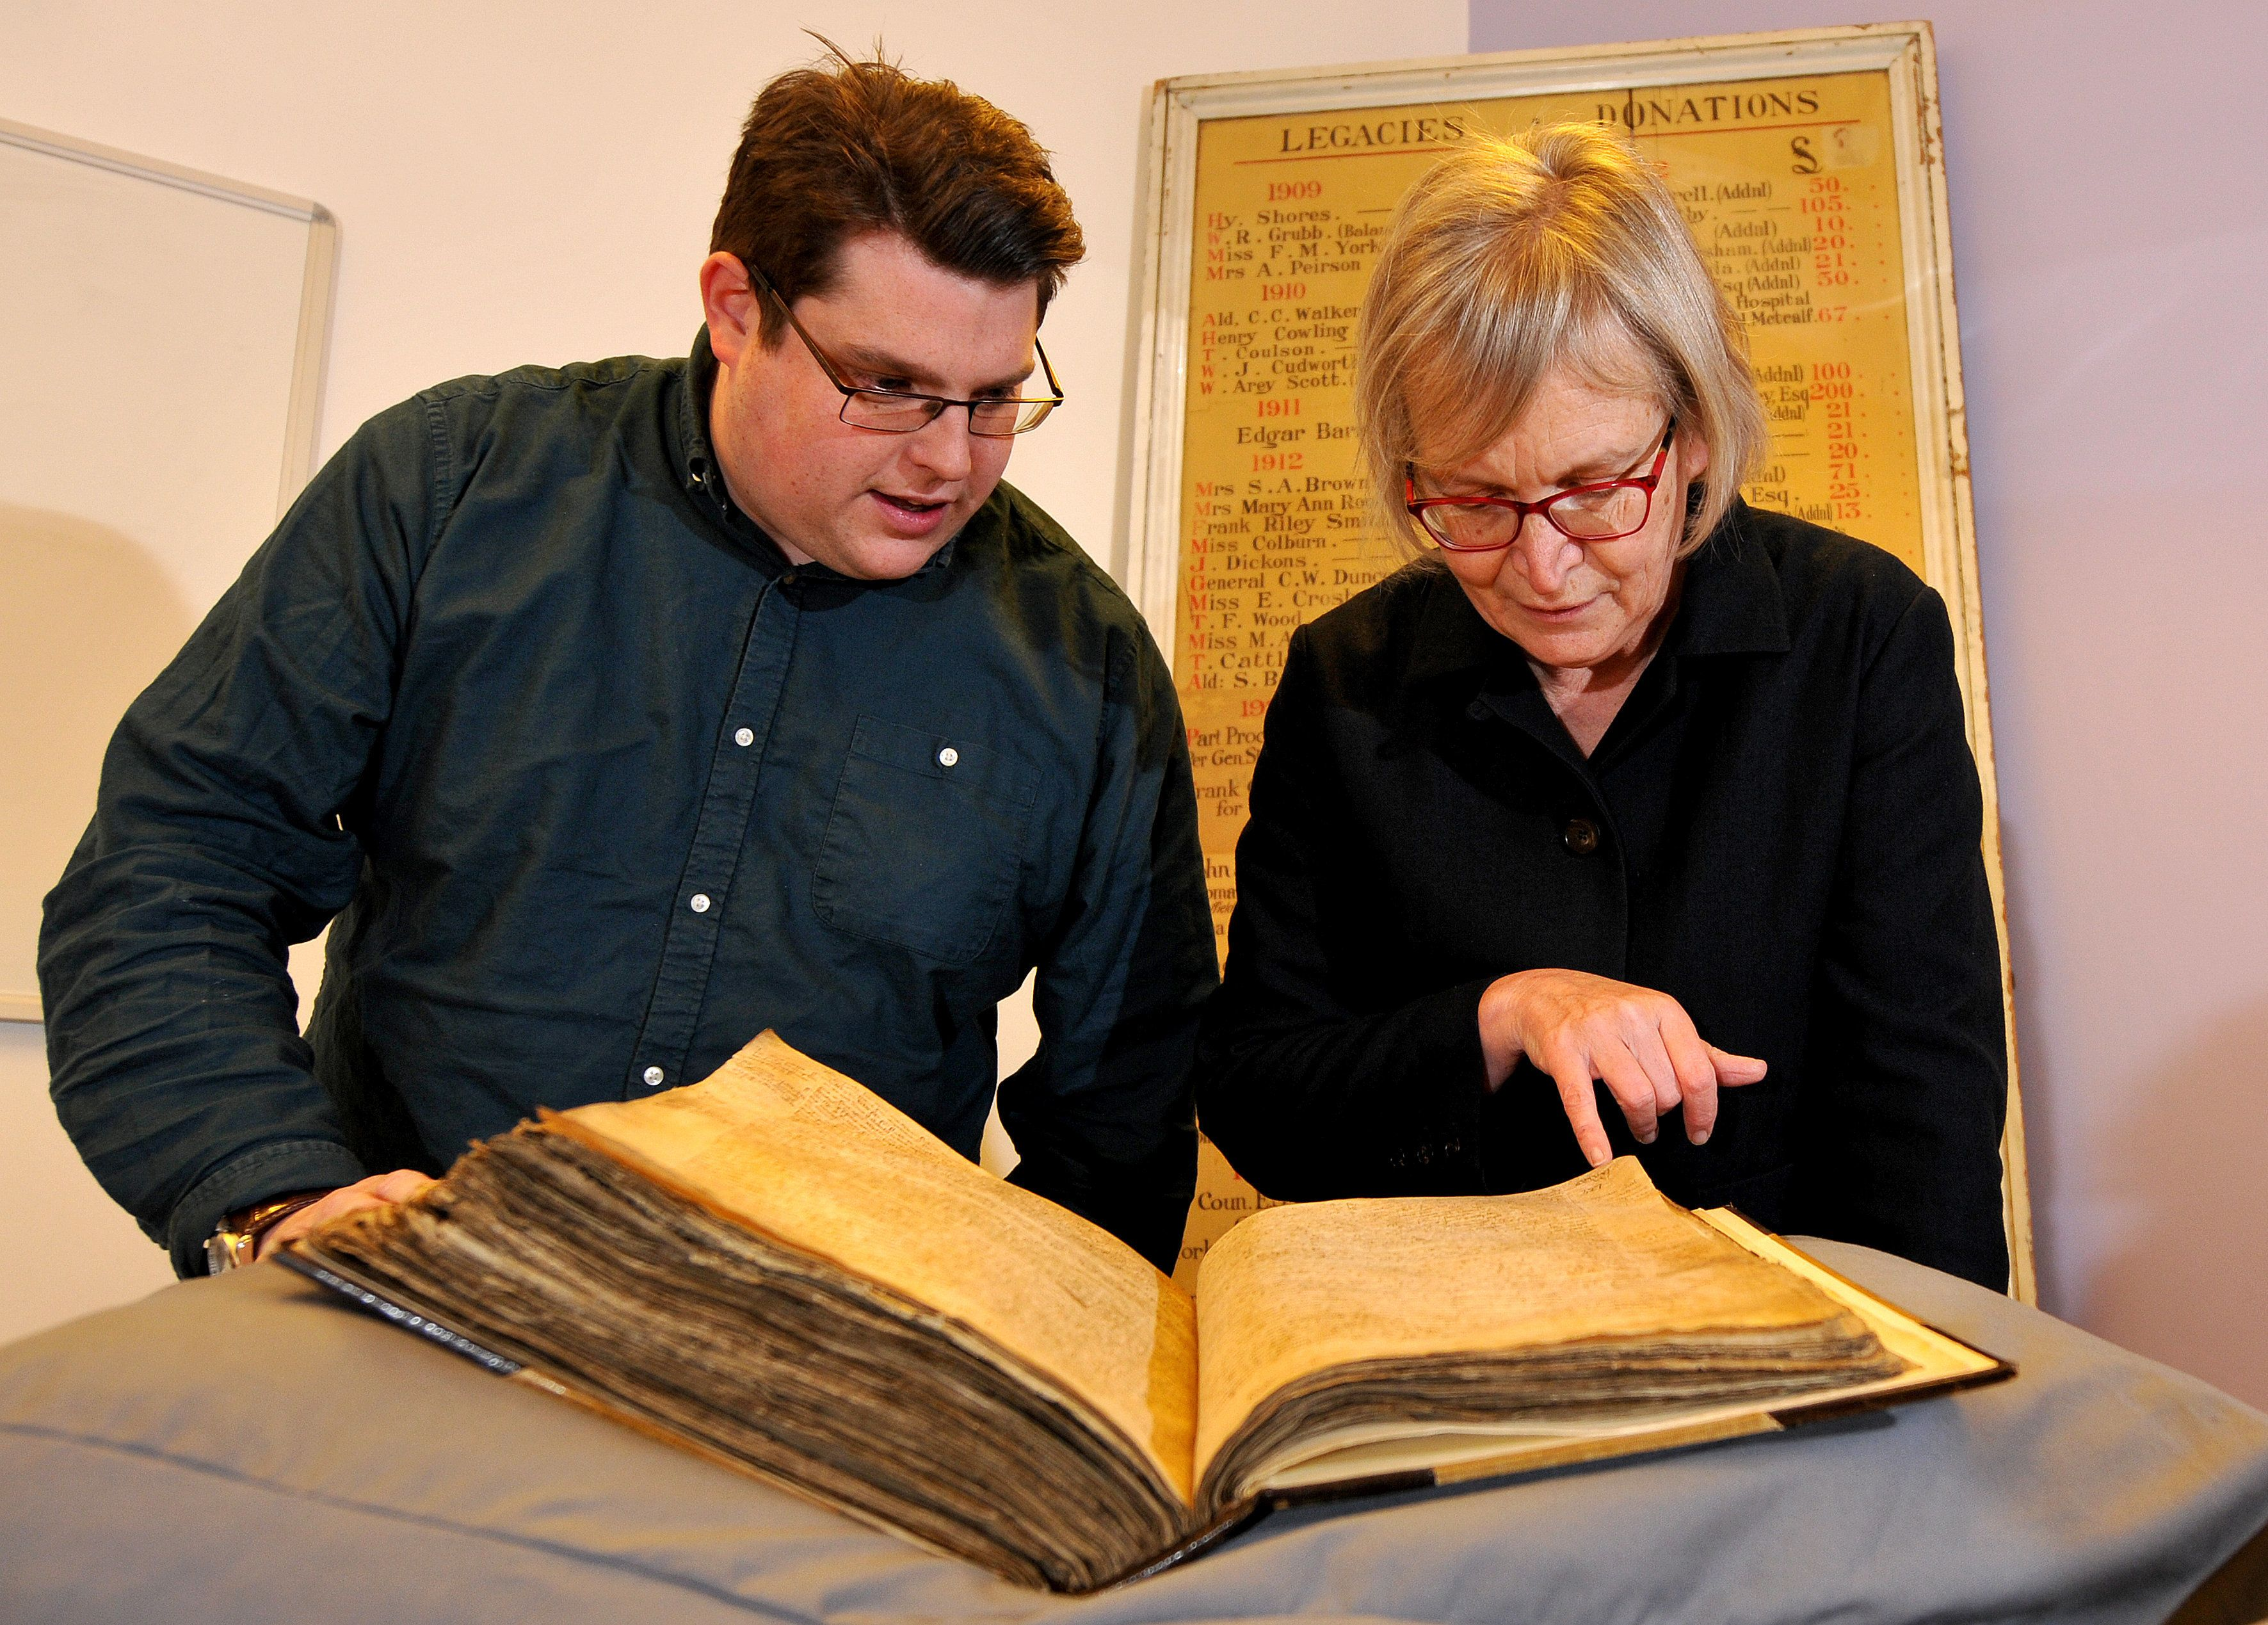 Gary Brannan, an archivist, and Sarah Rees Jones, director of the University of York's Centre for Medieval Studies, examine o